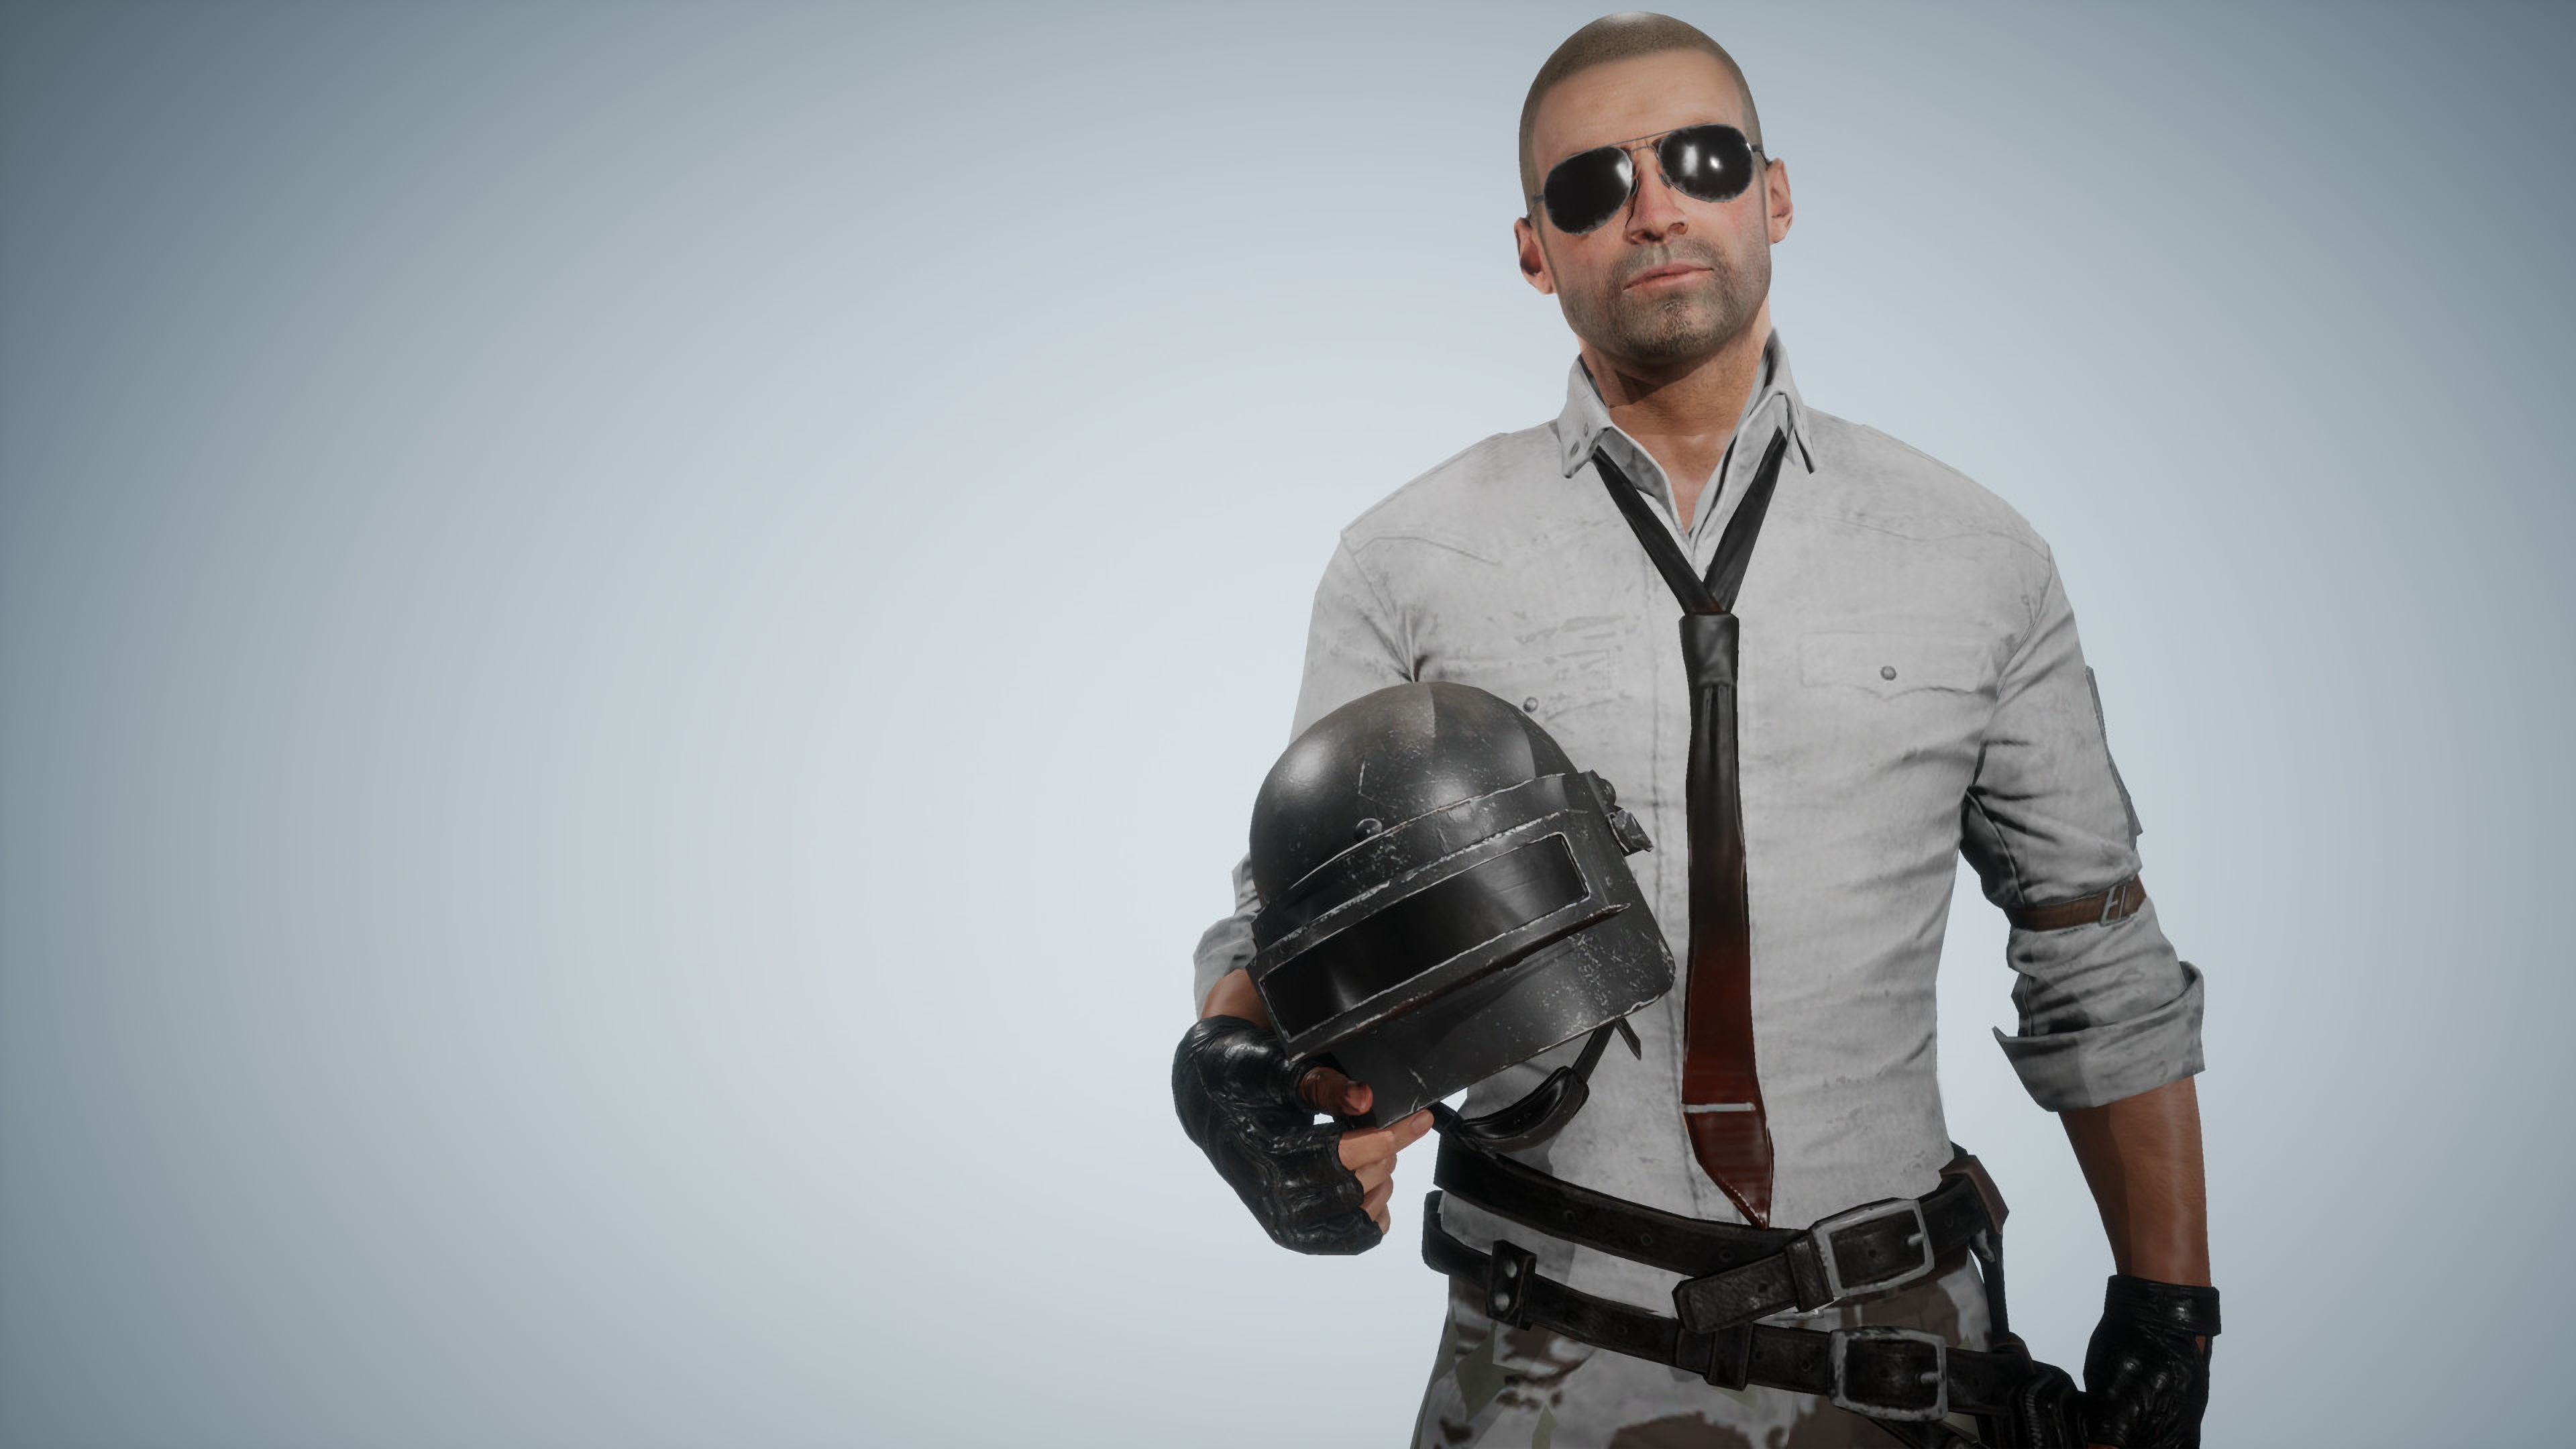 Pubg Mobile Helmet Wallpaper Pubg Pubgwallpapers: Pubg Helmet Guy Without Helmet, HD Games, 4k Wallpapers